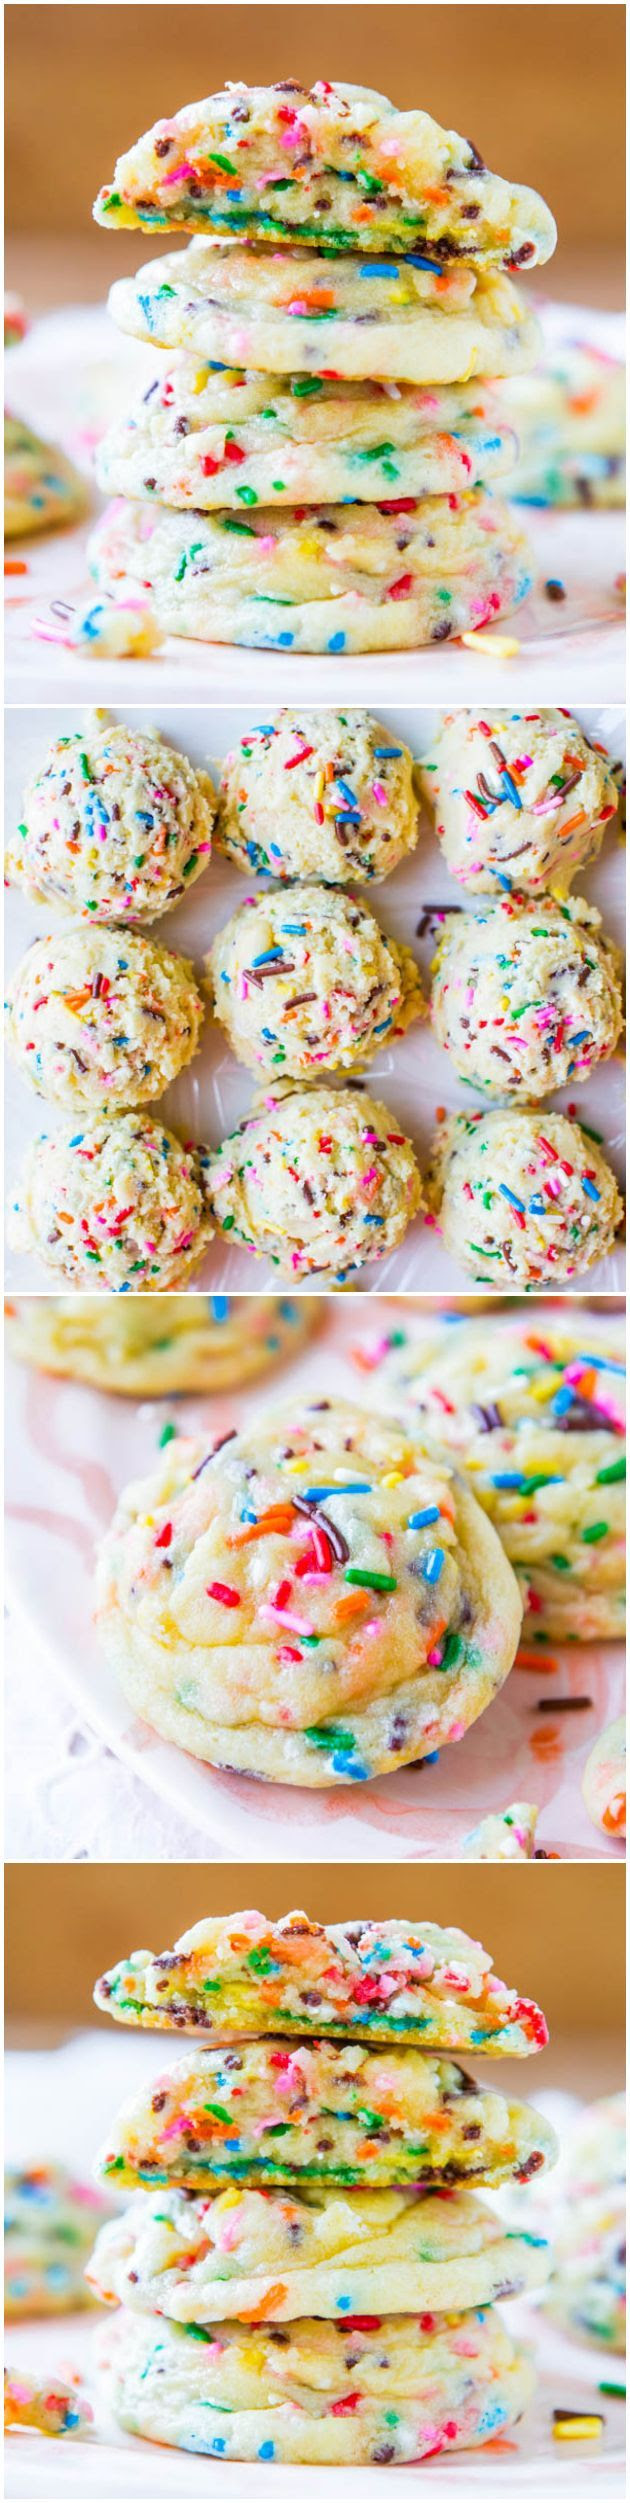 Softbatch Funfetti Sugar Cookies - Move over cake mix. These easy, super soft cookies are from scratch & loaded with sprinkles! Recipe at av...